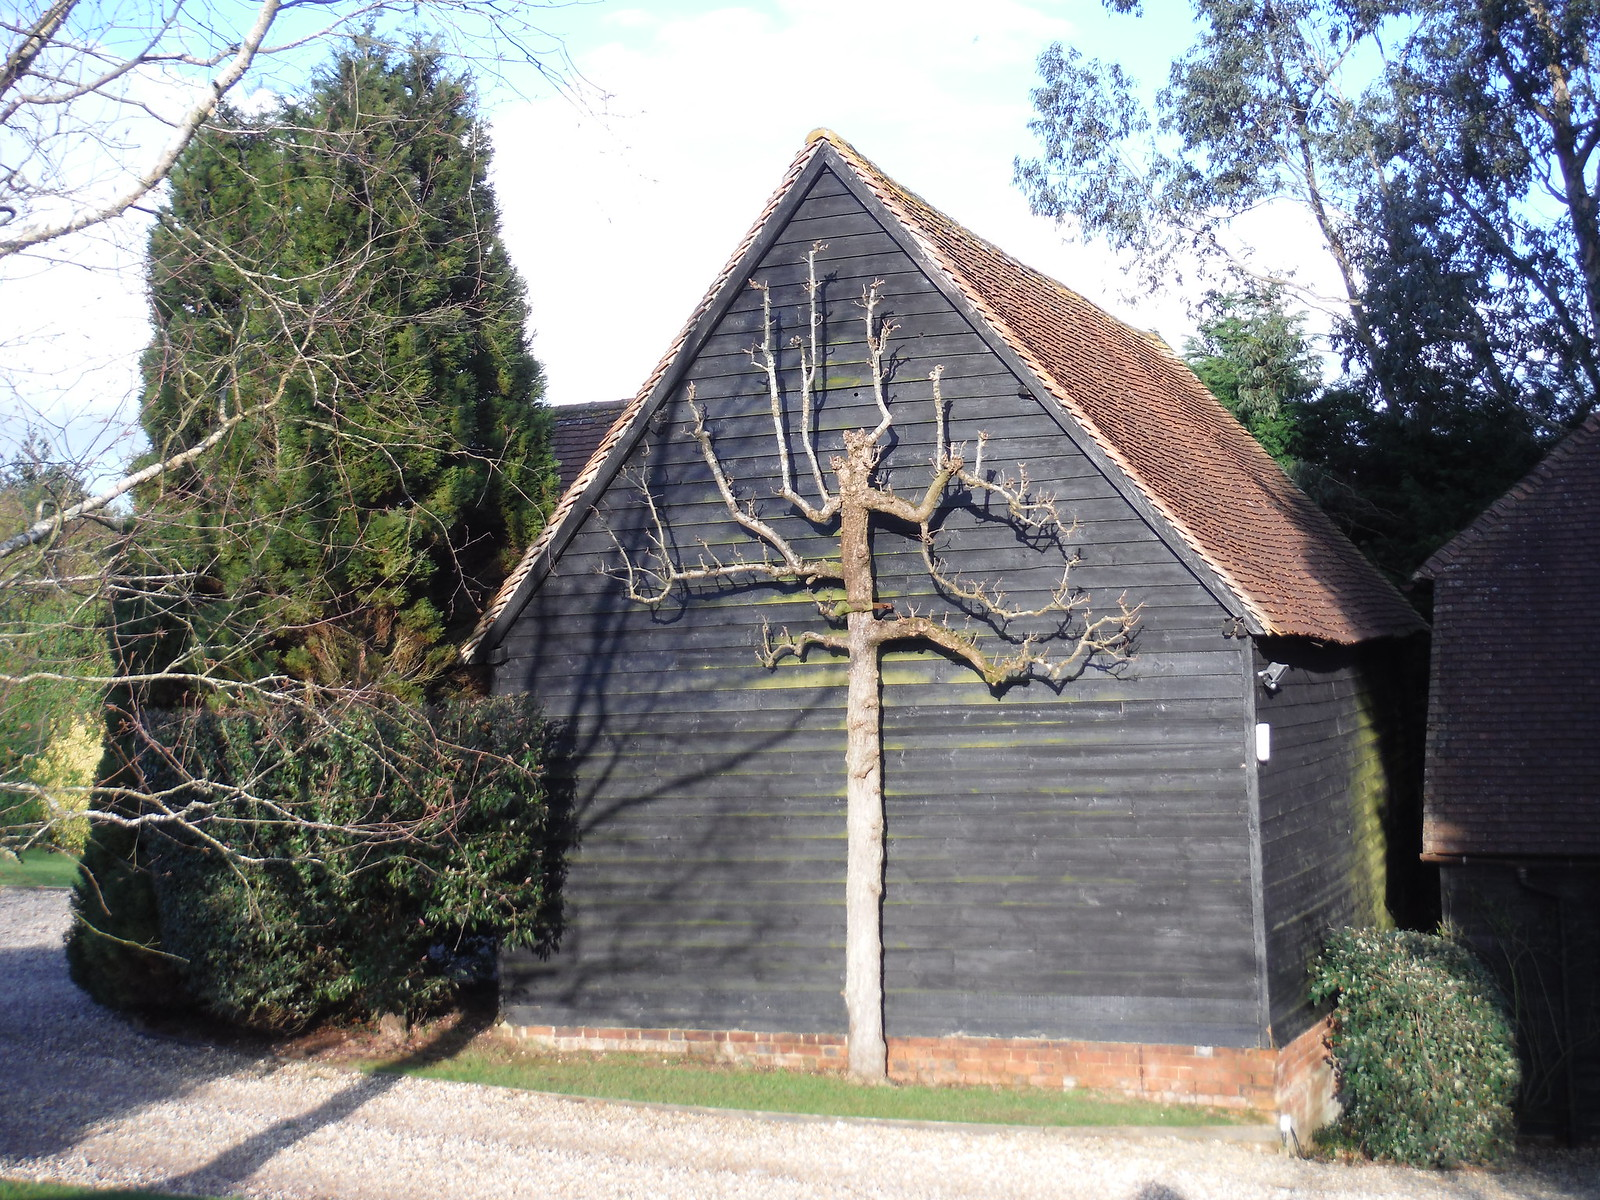 Barn at Wooten's SWC Walk 117 Aldermaston to Woolhampton (via Stanford Dingley)